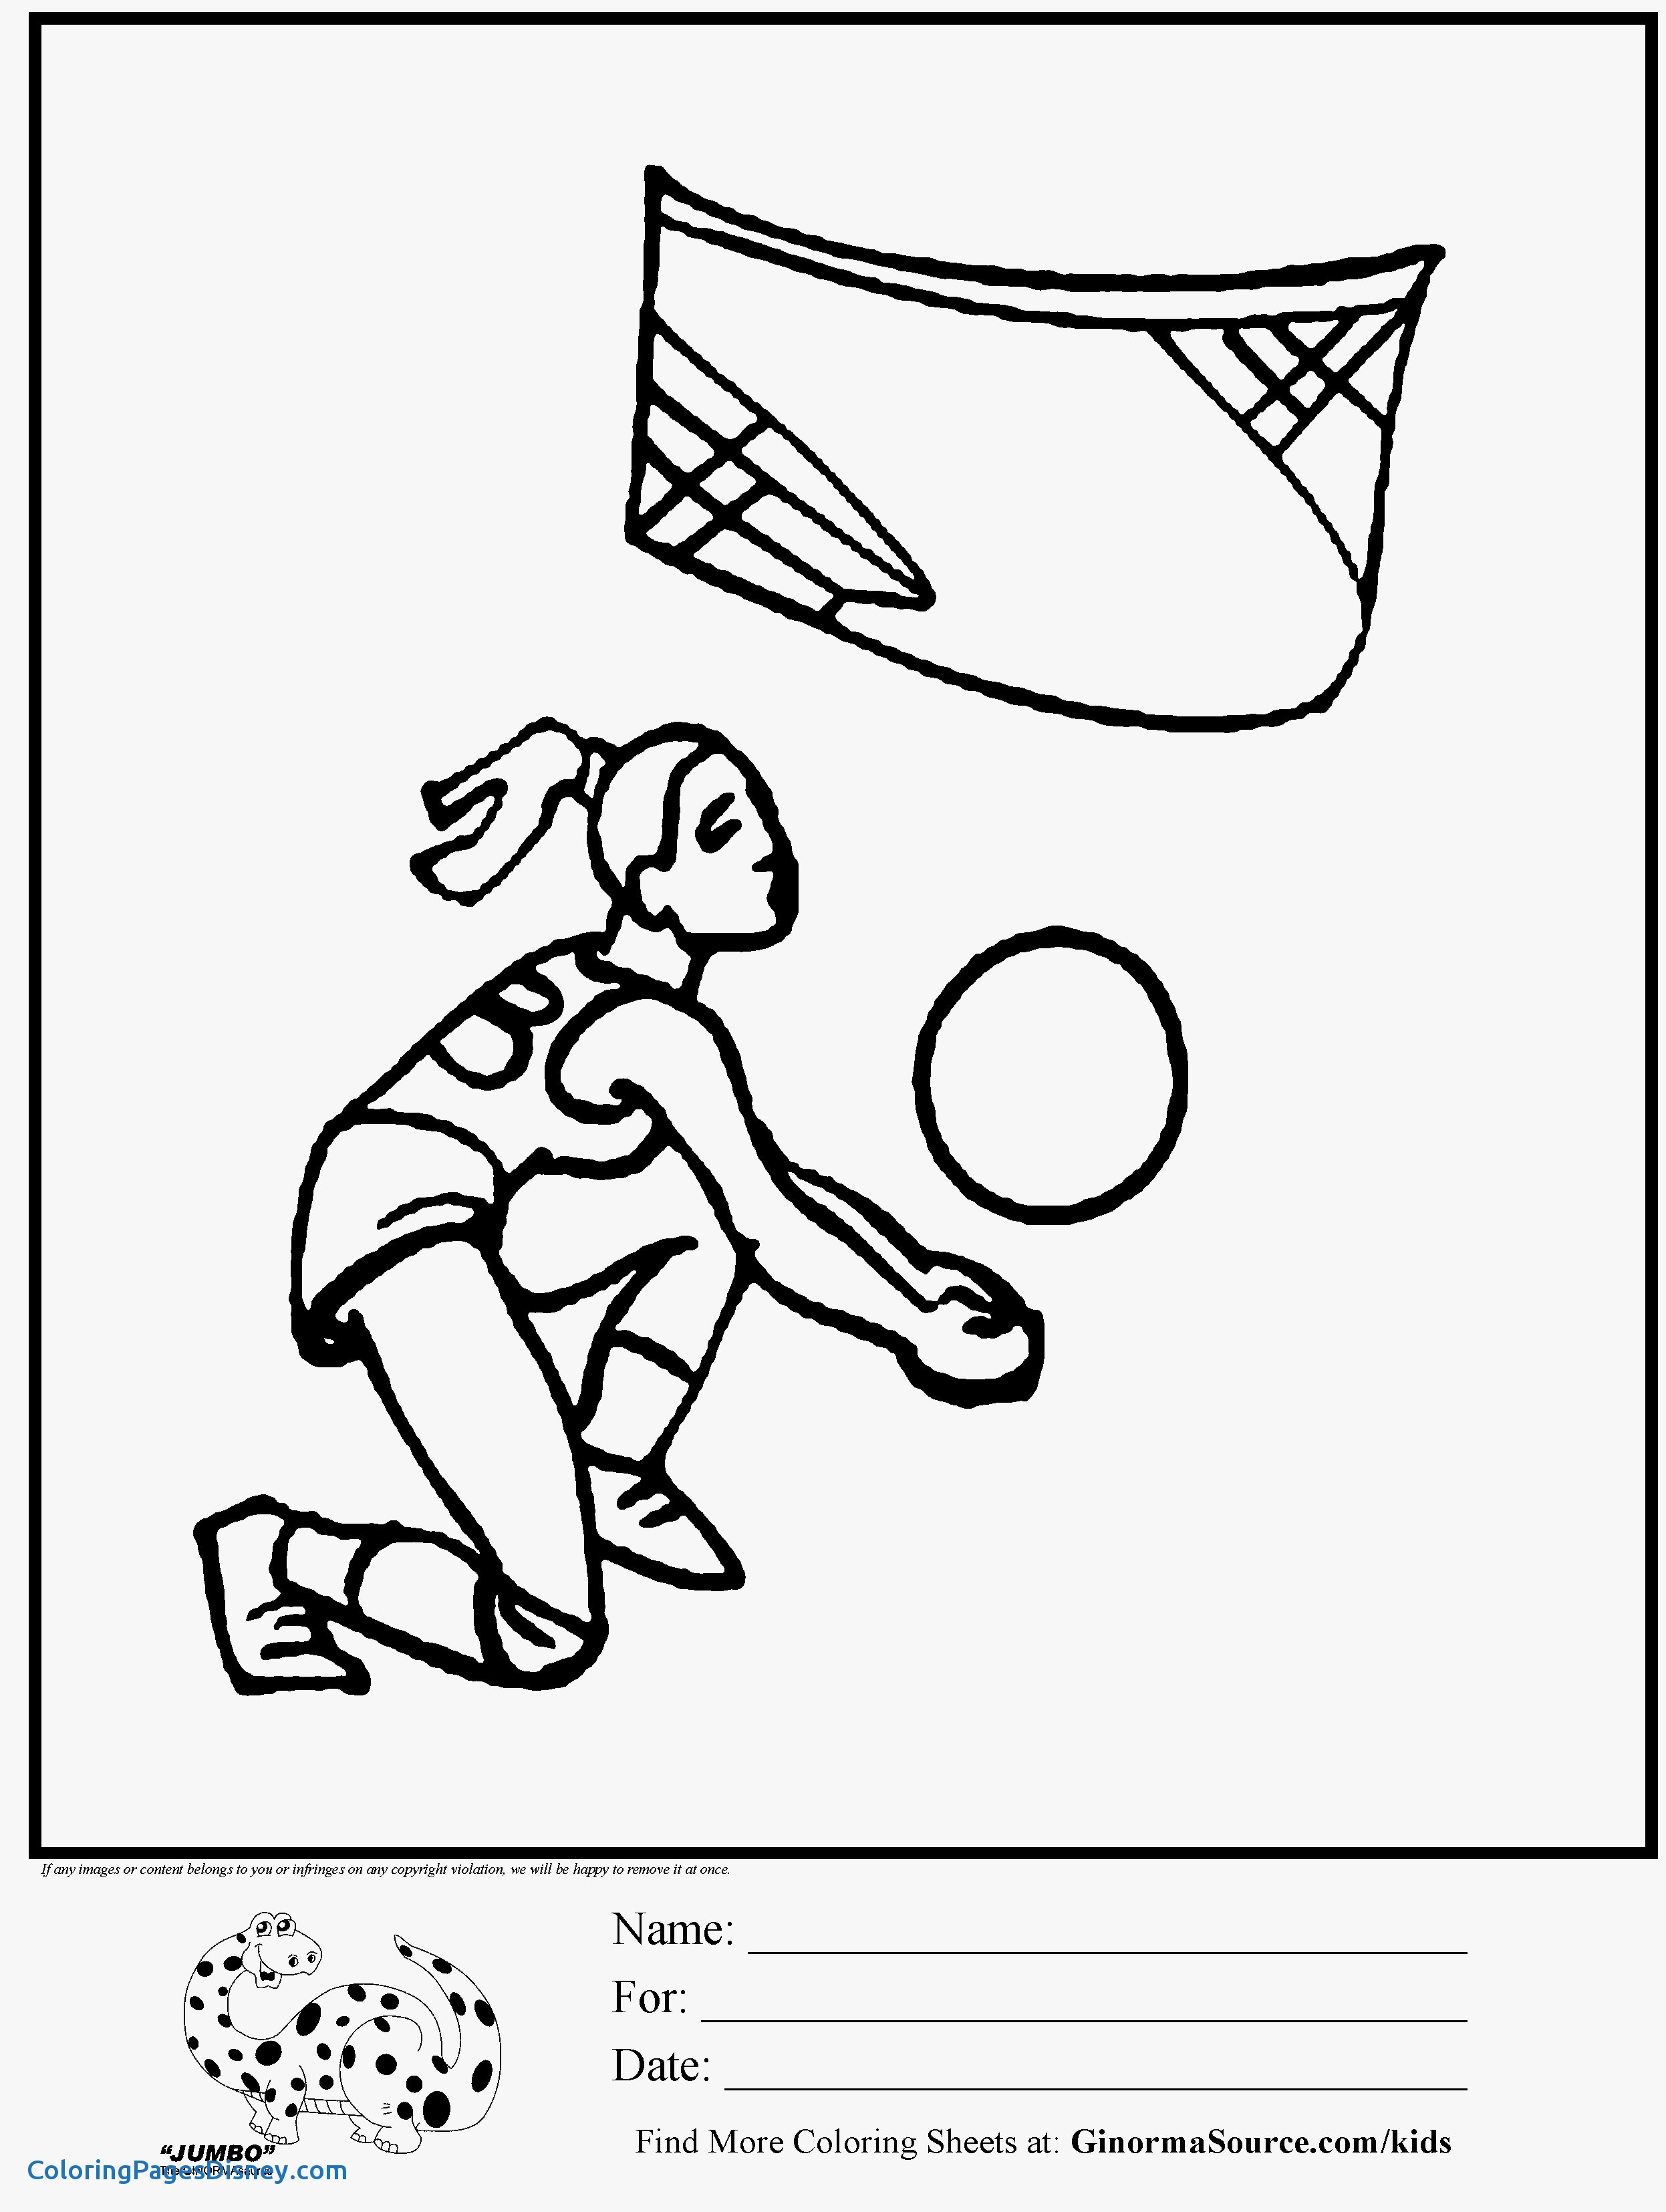 Uga Coloring Pages At Getcolorings